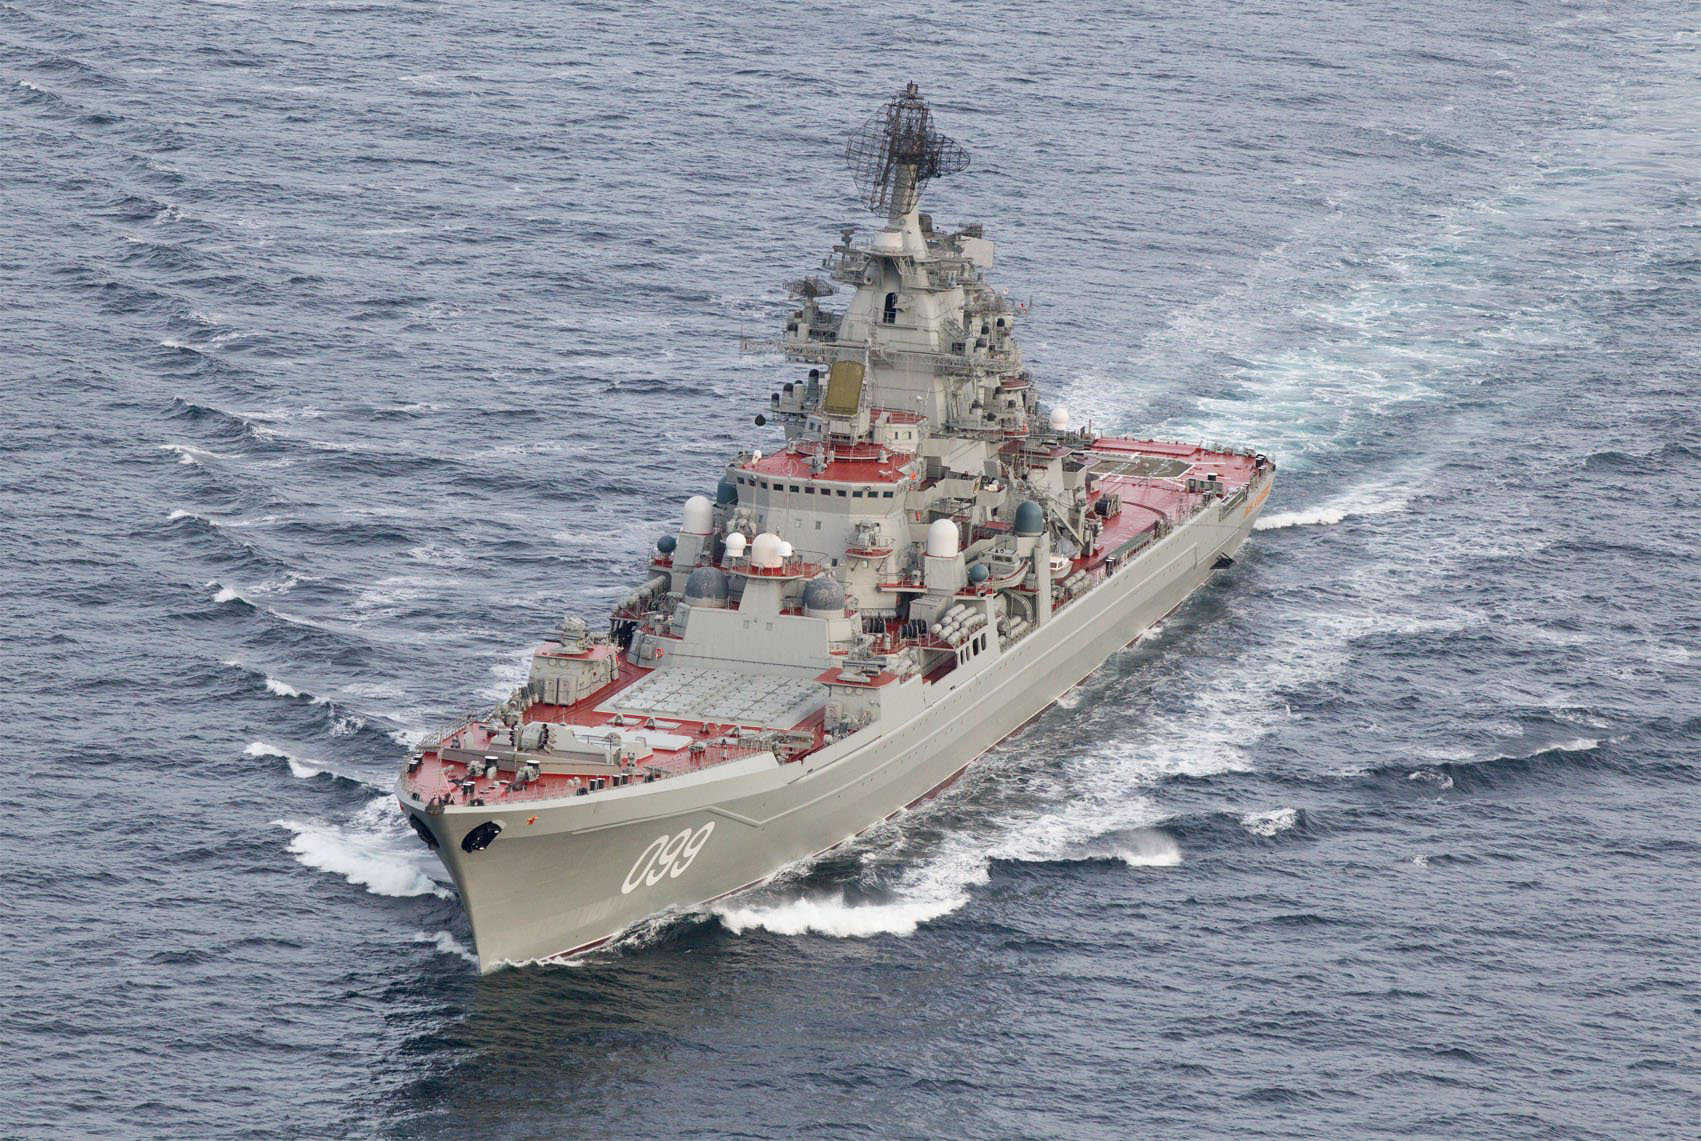 REFILE - CORRECTING TYPE OF SHIPA photo taken from a Norwegian surveillance aircraft shows Kirov-class cruiser Peter the Great in international waters off the coast of Northern Norway on October 17, 2016. 333 Sqaudron, Norwegian Royal Airforce/NTB Scanpix/Handout via Reuters ATTENTION EDITORS - THIS IMAGE WAS PROVIDED BY A THIRD PARTY. FOR EDITORIAL USE ONLY. NORWAY OUT.